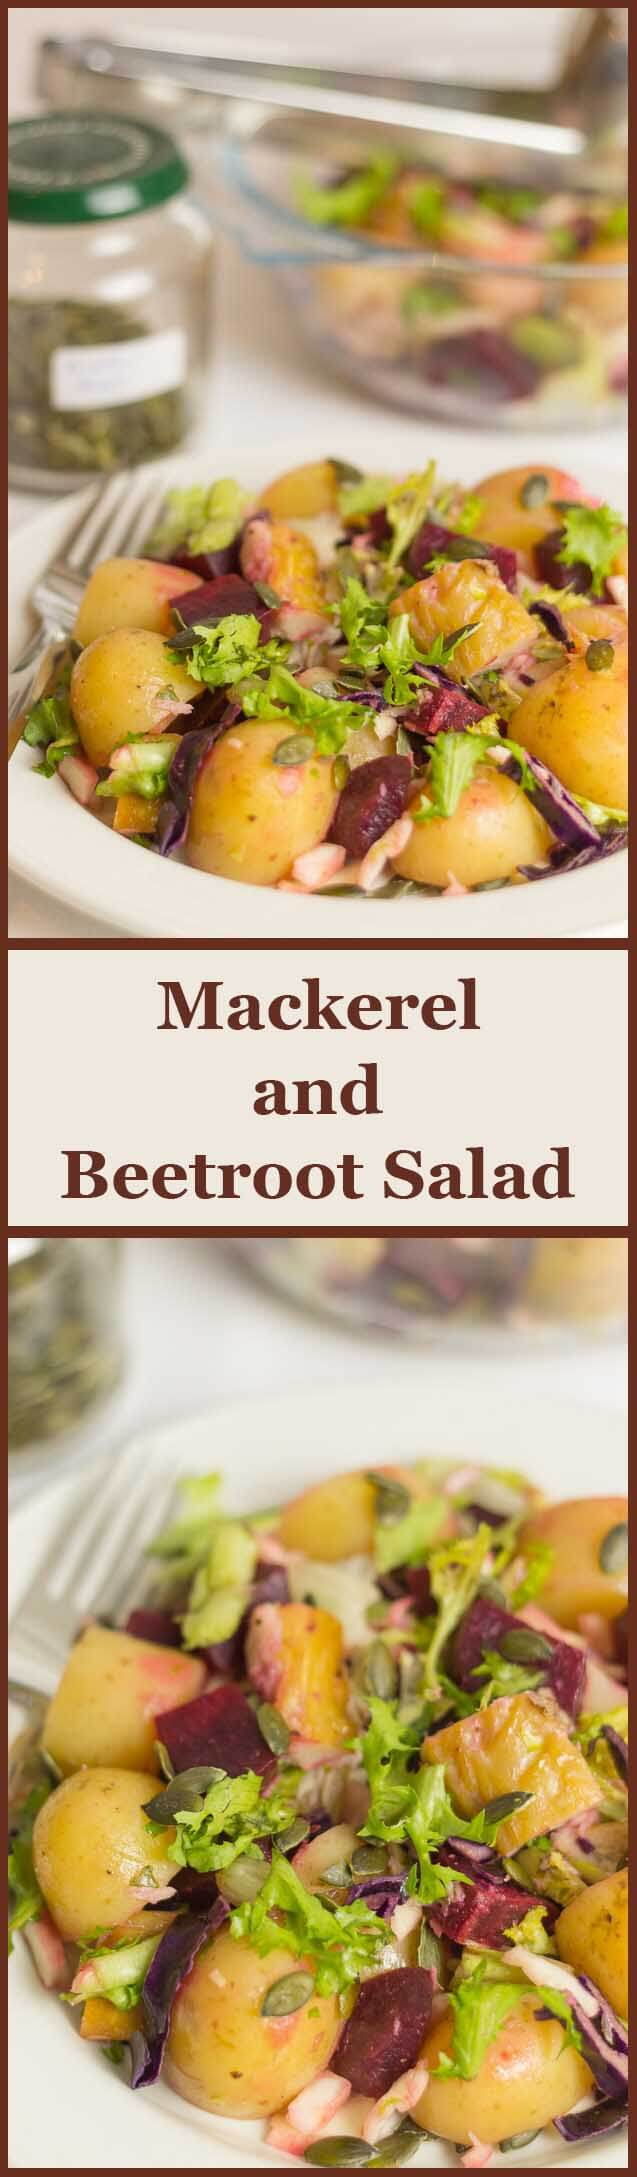 This mackerel beetroot salad is a perfect nutritious packed lunch option. It's rich in healthy oils like Omega-3 and Omega-6. And it's packed with essential vitamins and minerals too.